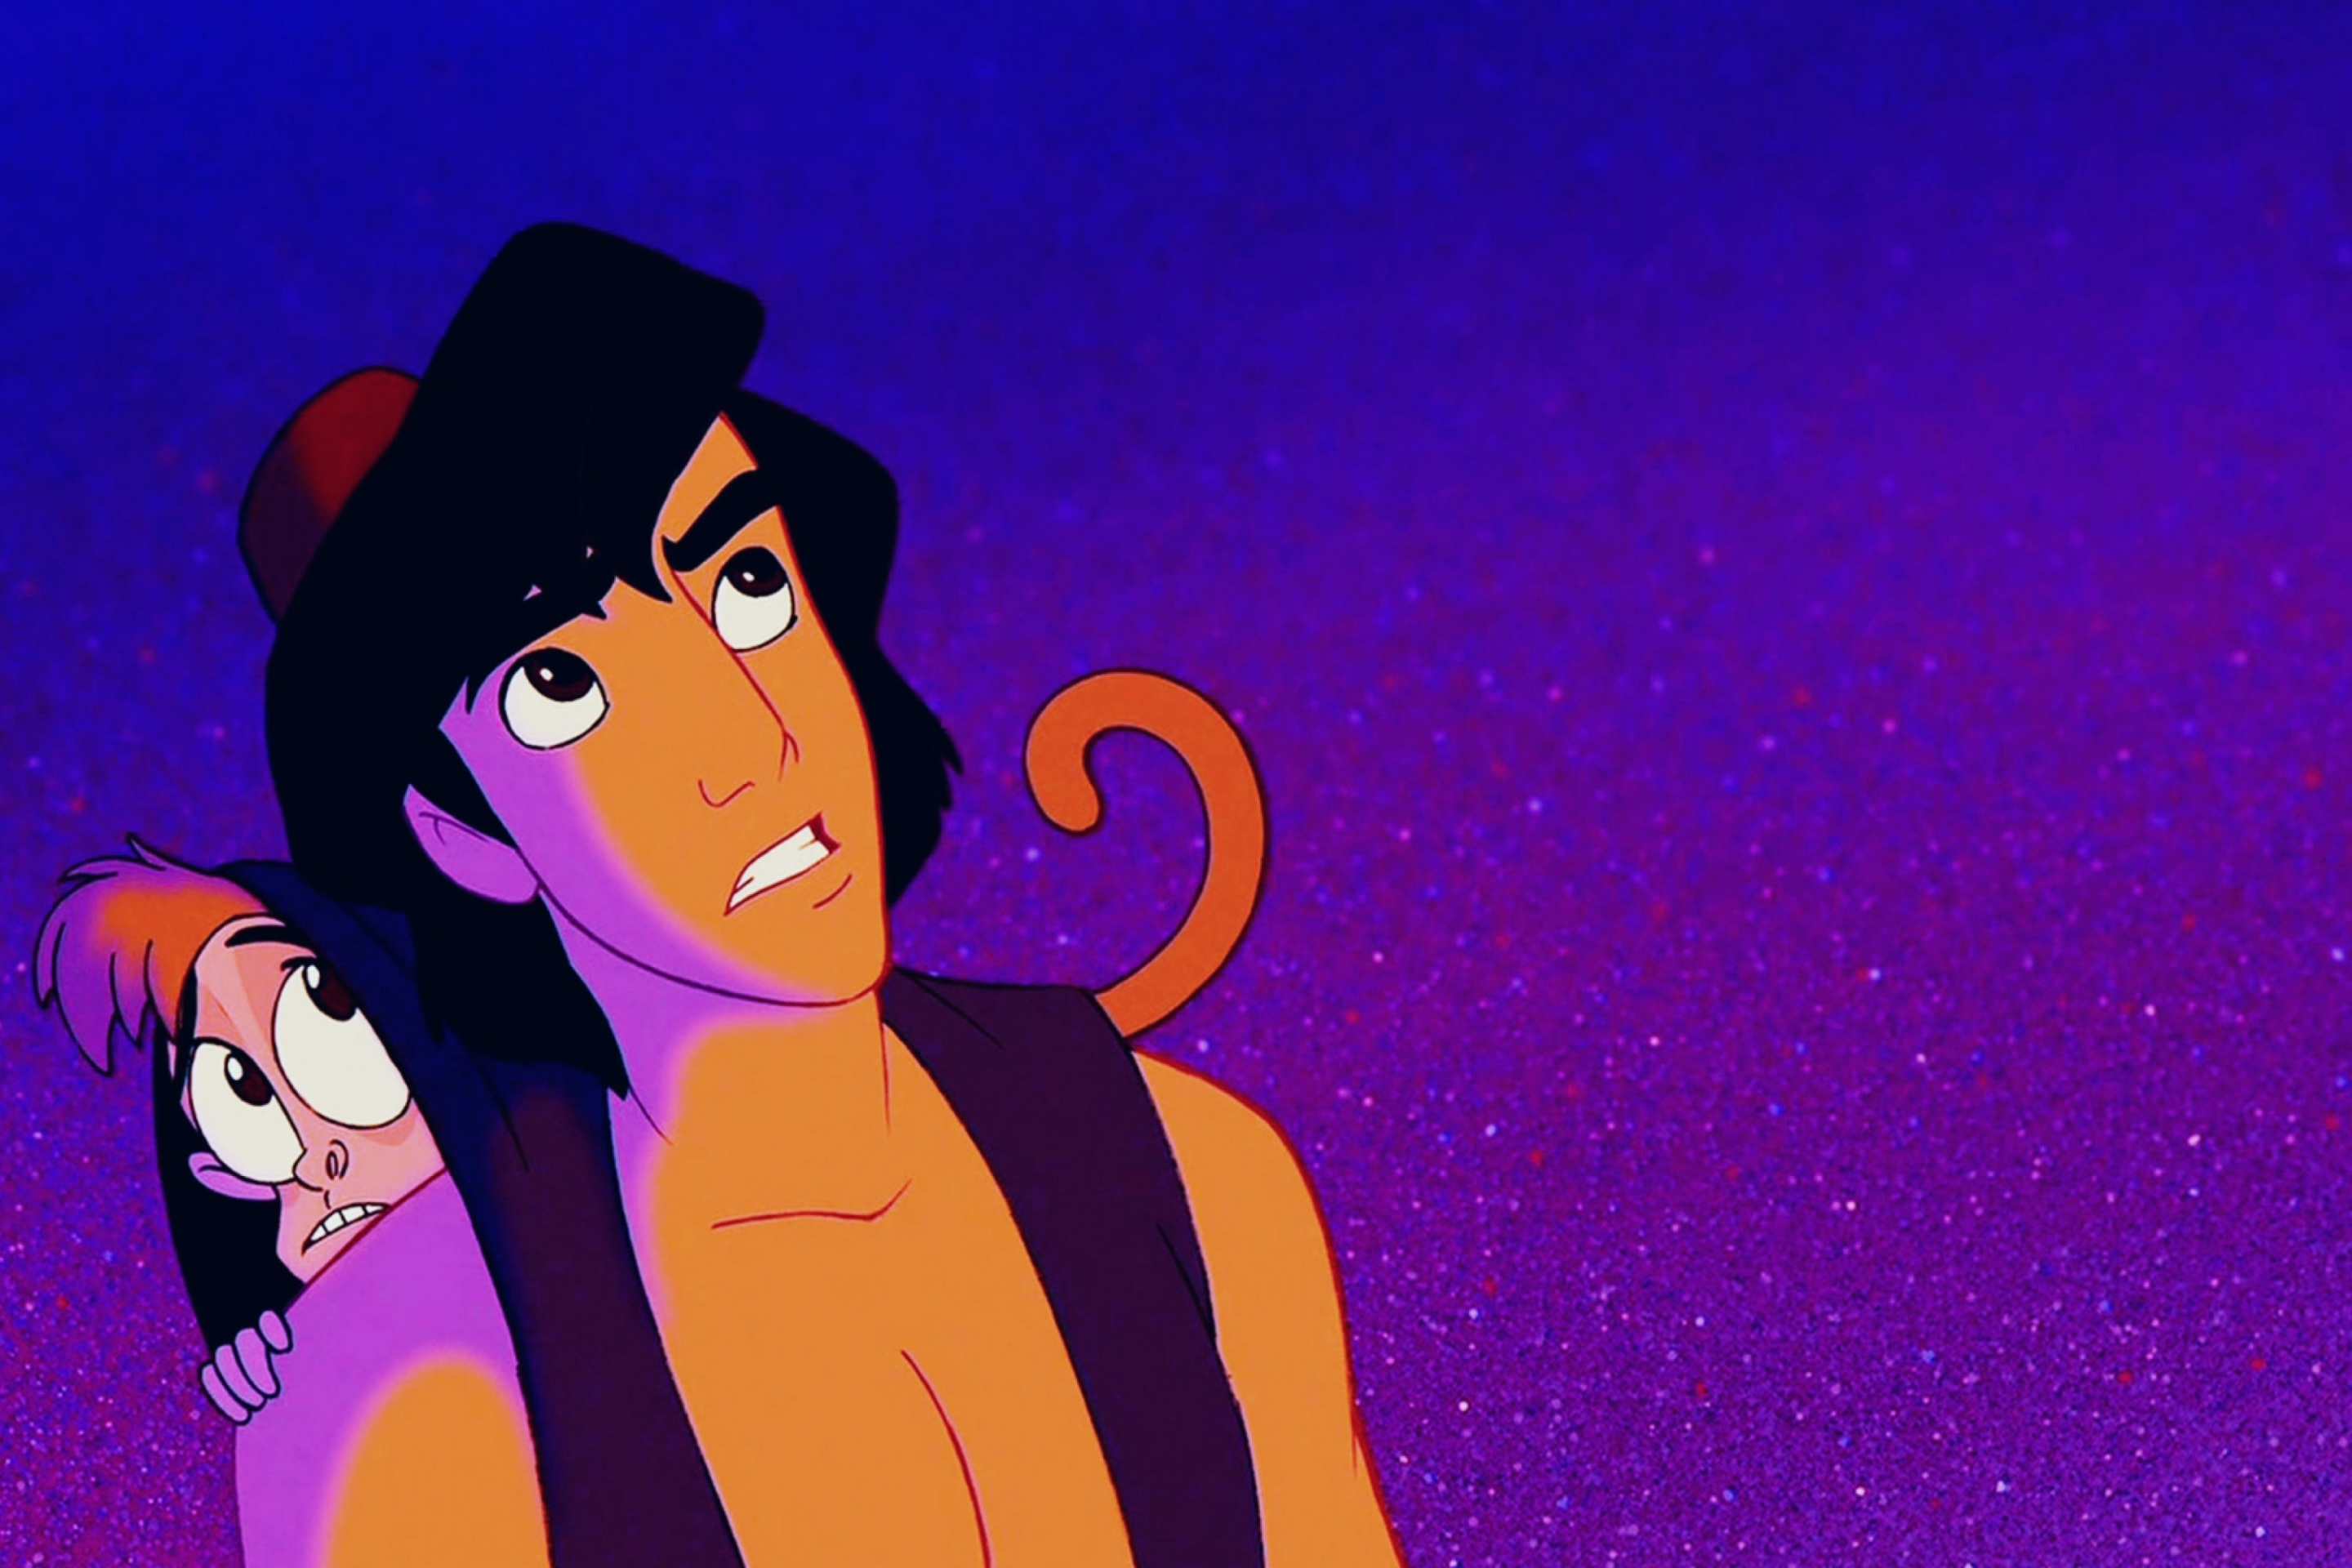 Aladdin is the protagonist of the 1992 Disney animated feature film of the same name He was an audacious and spirited street rat living in the kingdom of Agrabah